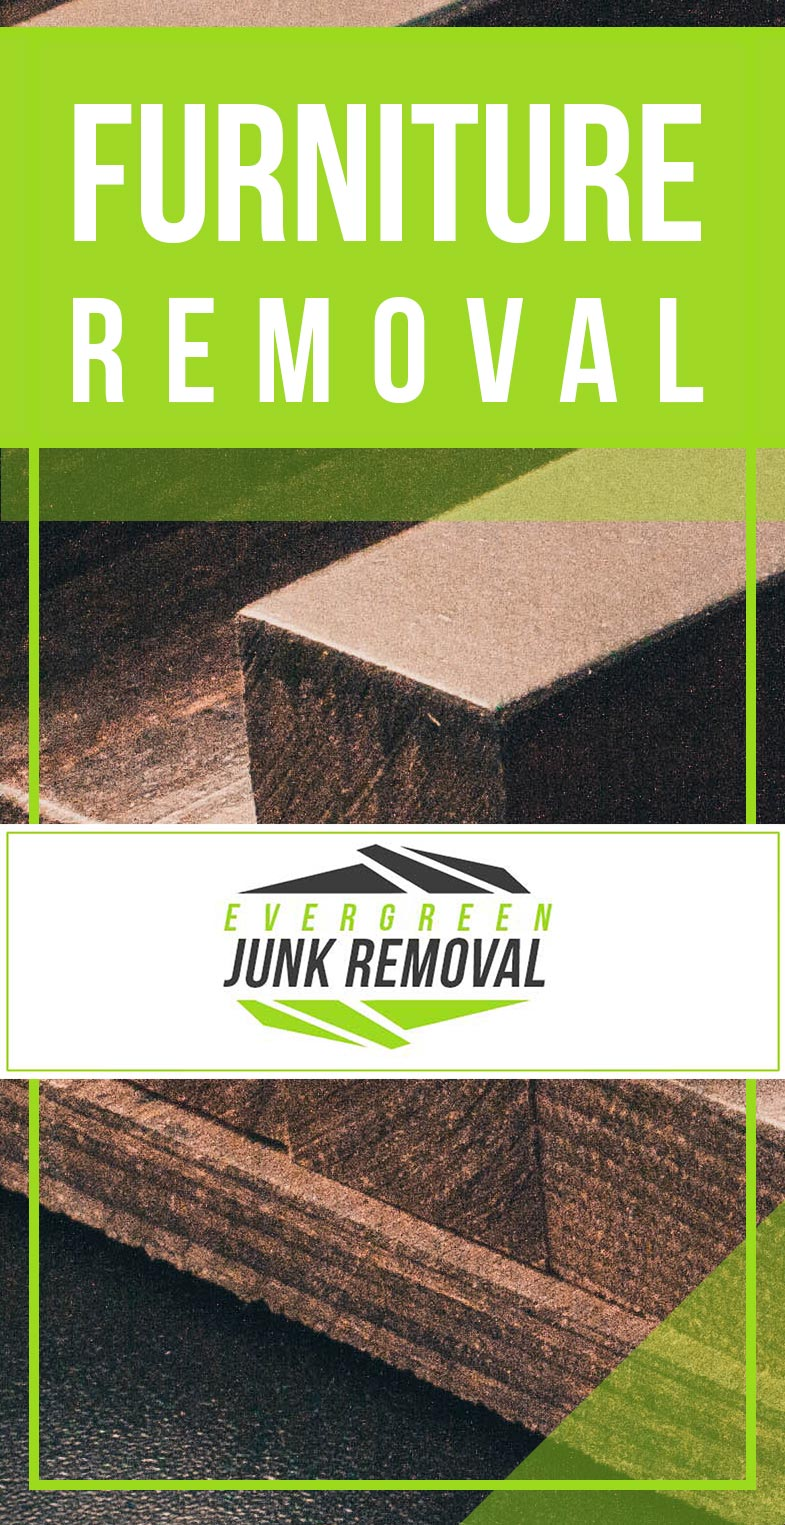 Norwalk Furniture Removal